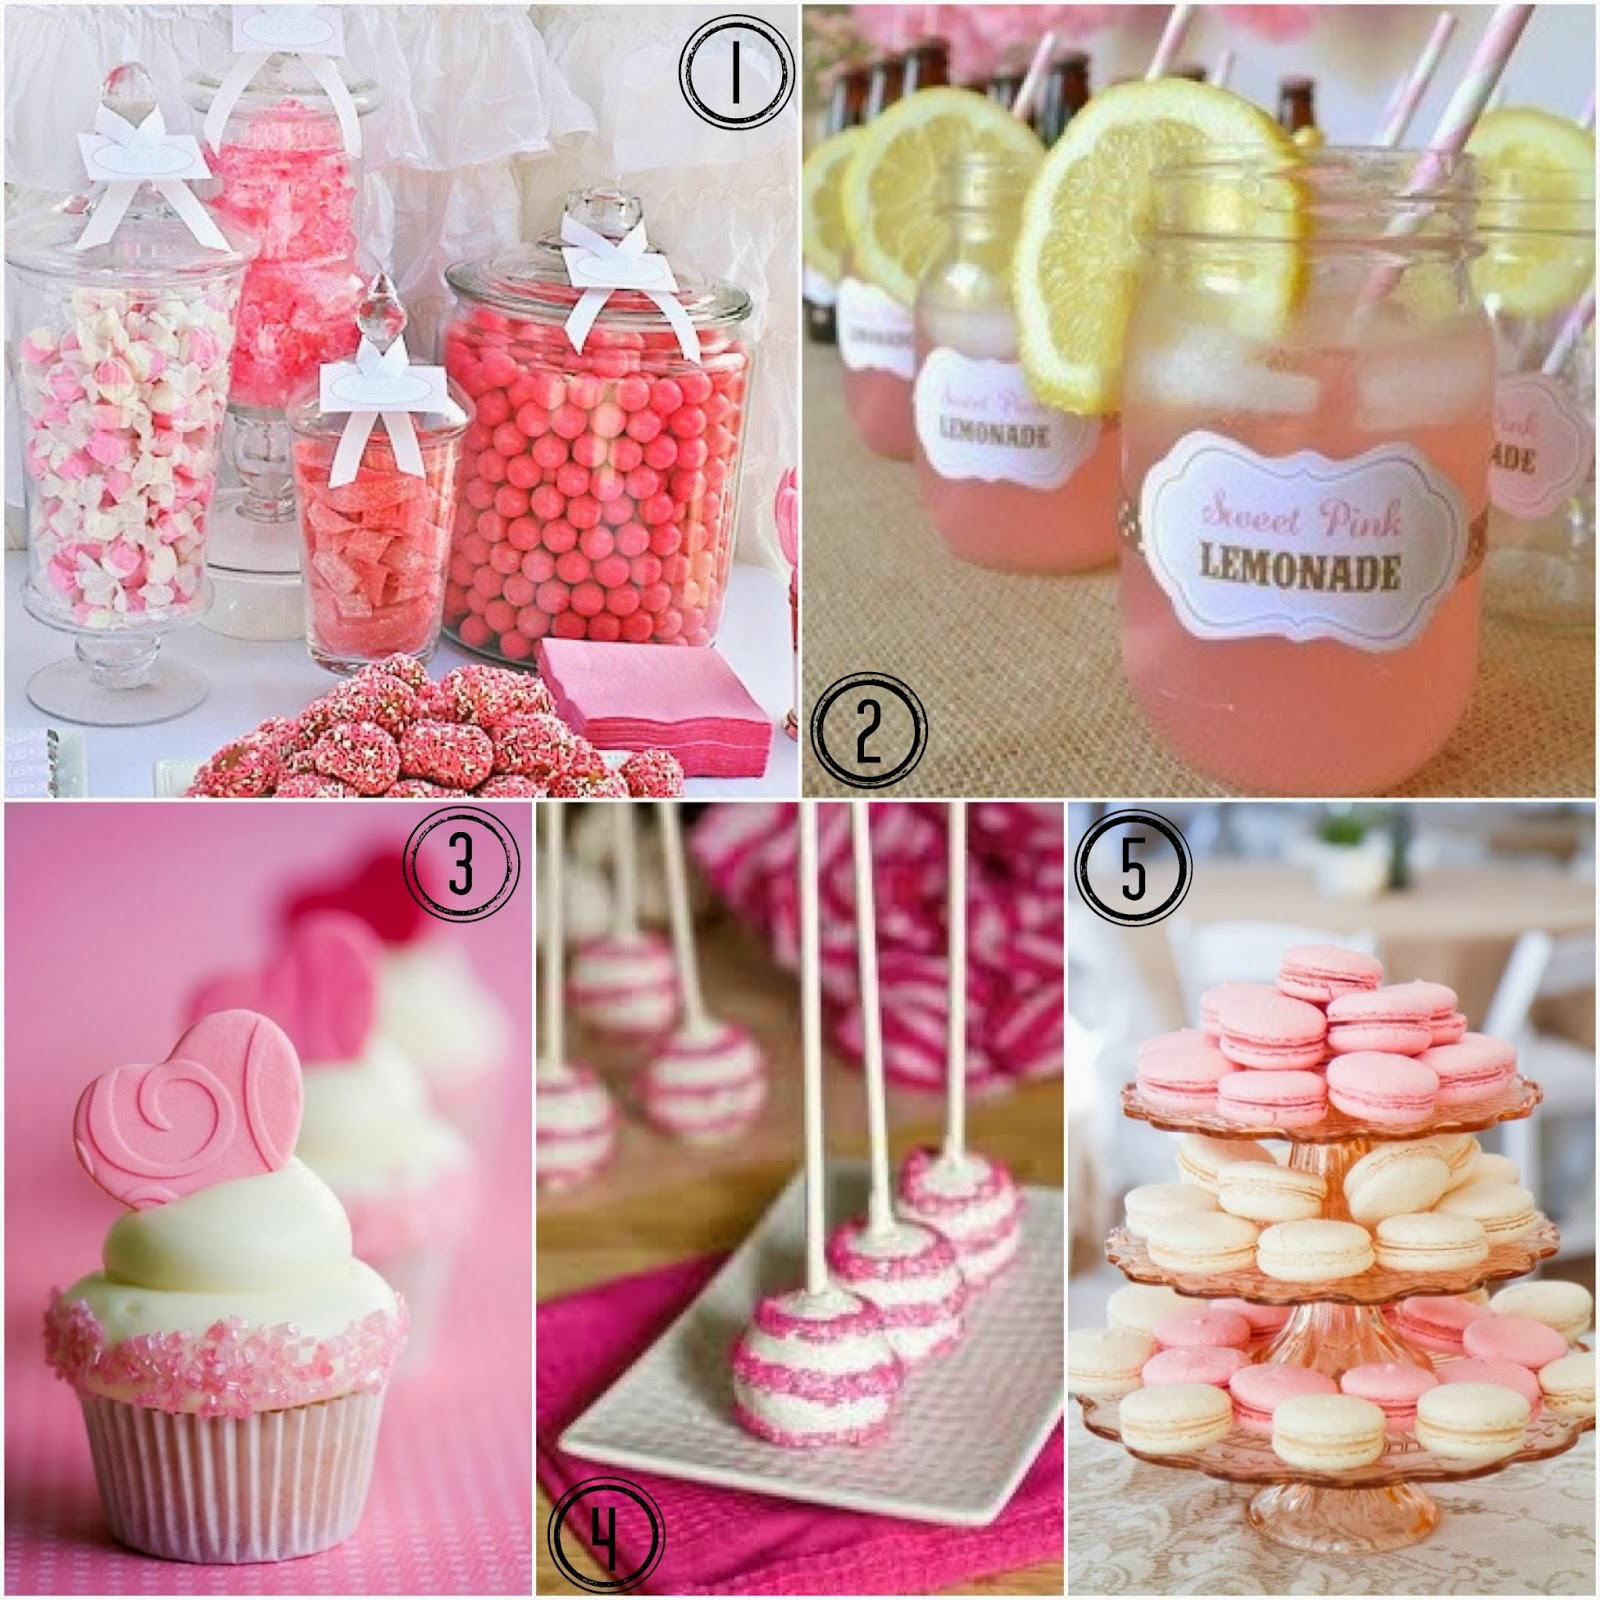 Bridal Shower Decorations Ideas Pinterest : Love theme Bridal shower Decor and Ideas Pinterest